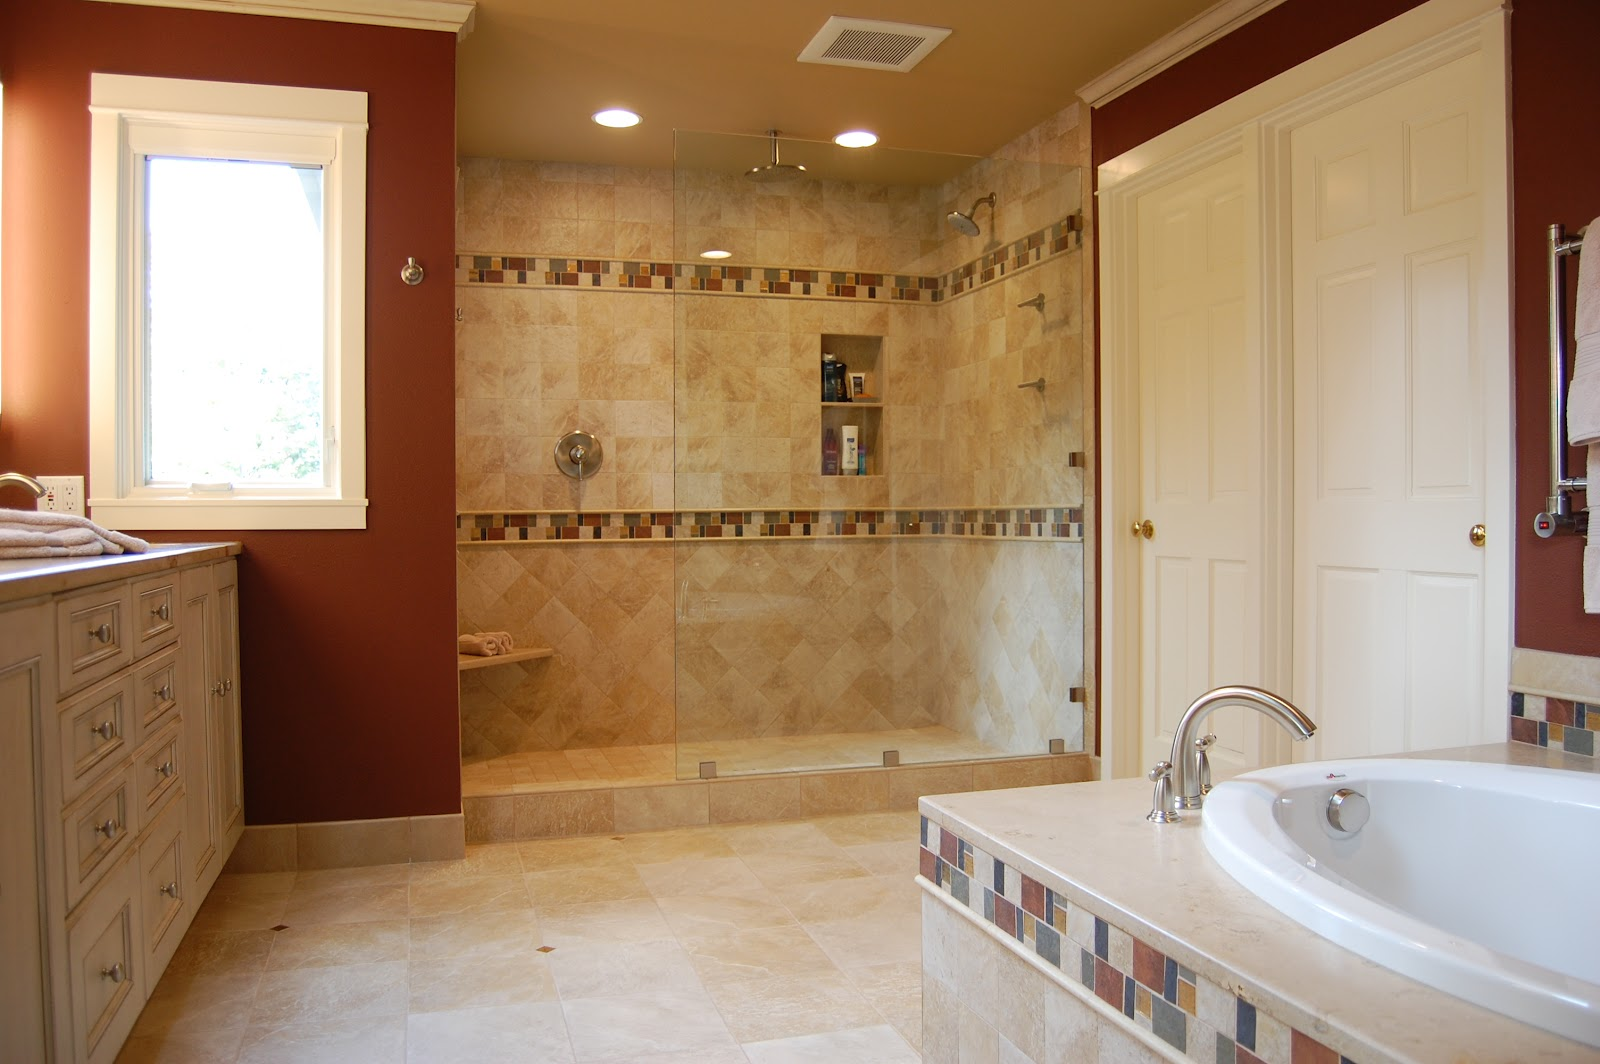 Remodel Bathroom Shower Bathroom Remodel Ideas Remodeling Small Bathroom With Bright